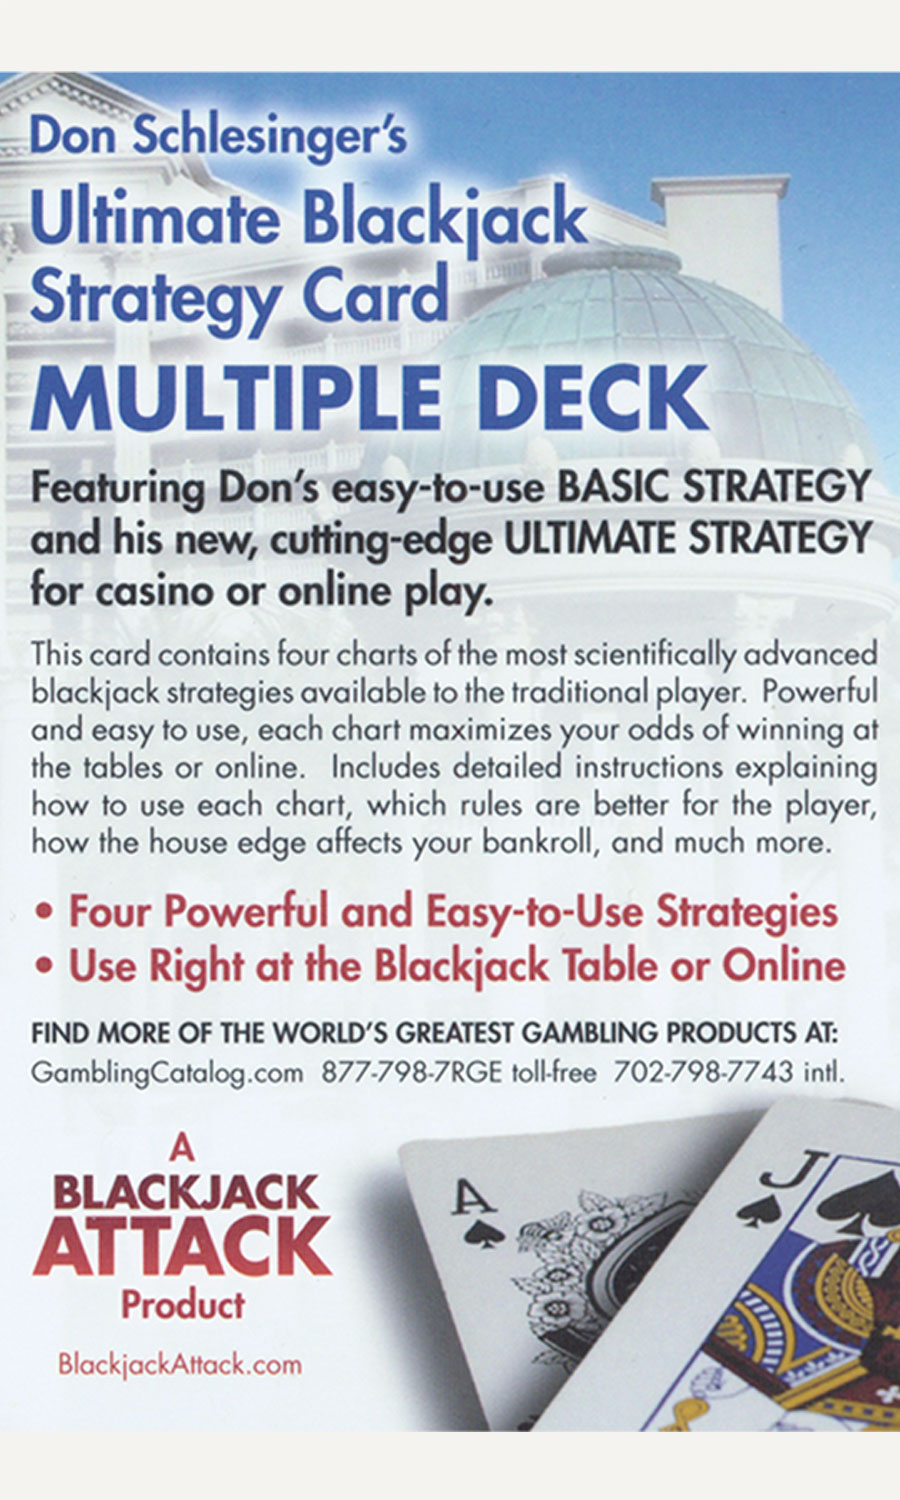 photograph regarding Blackjack Strategy Card Printable referred to as Final Blackjack System Card (many deck)